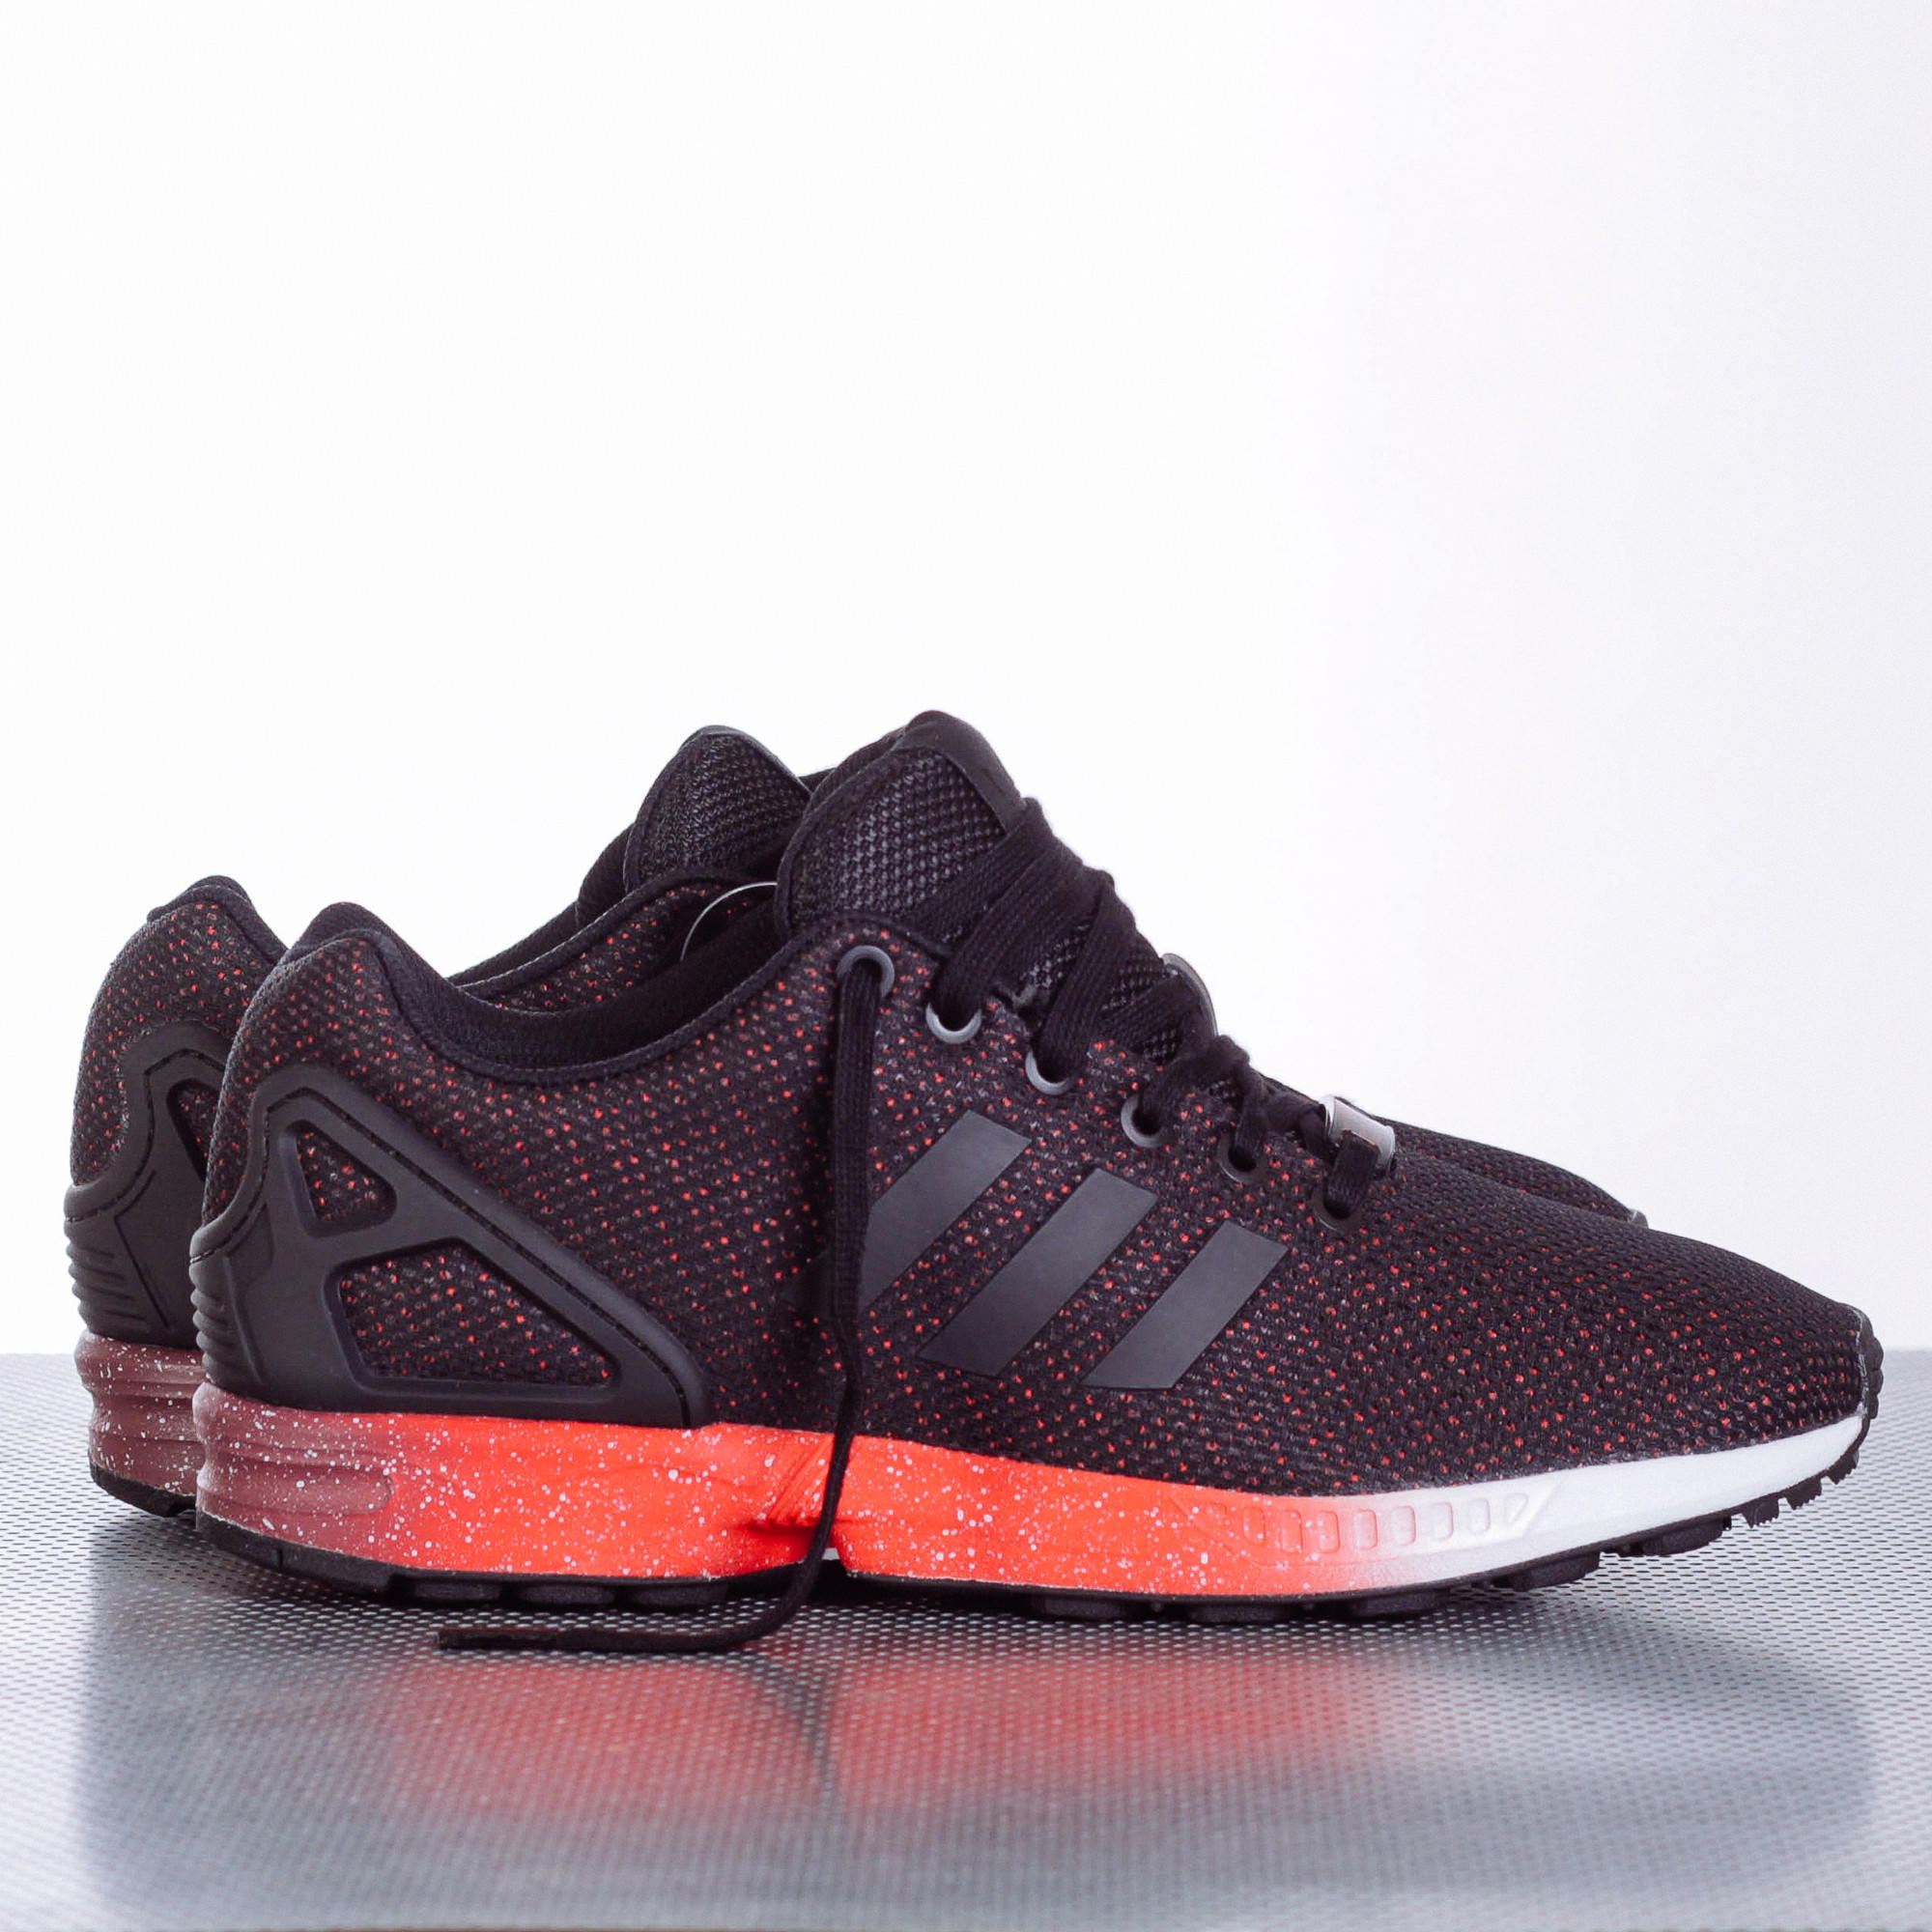 adidas zx flux red and black